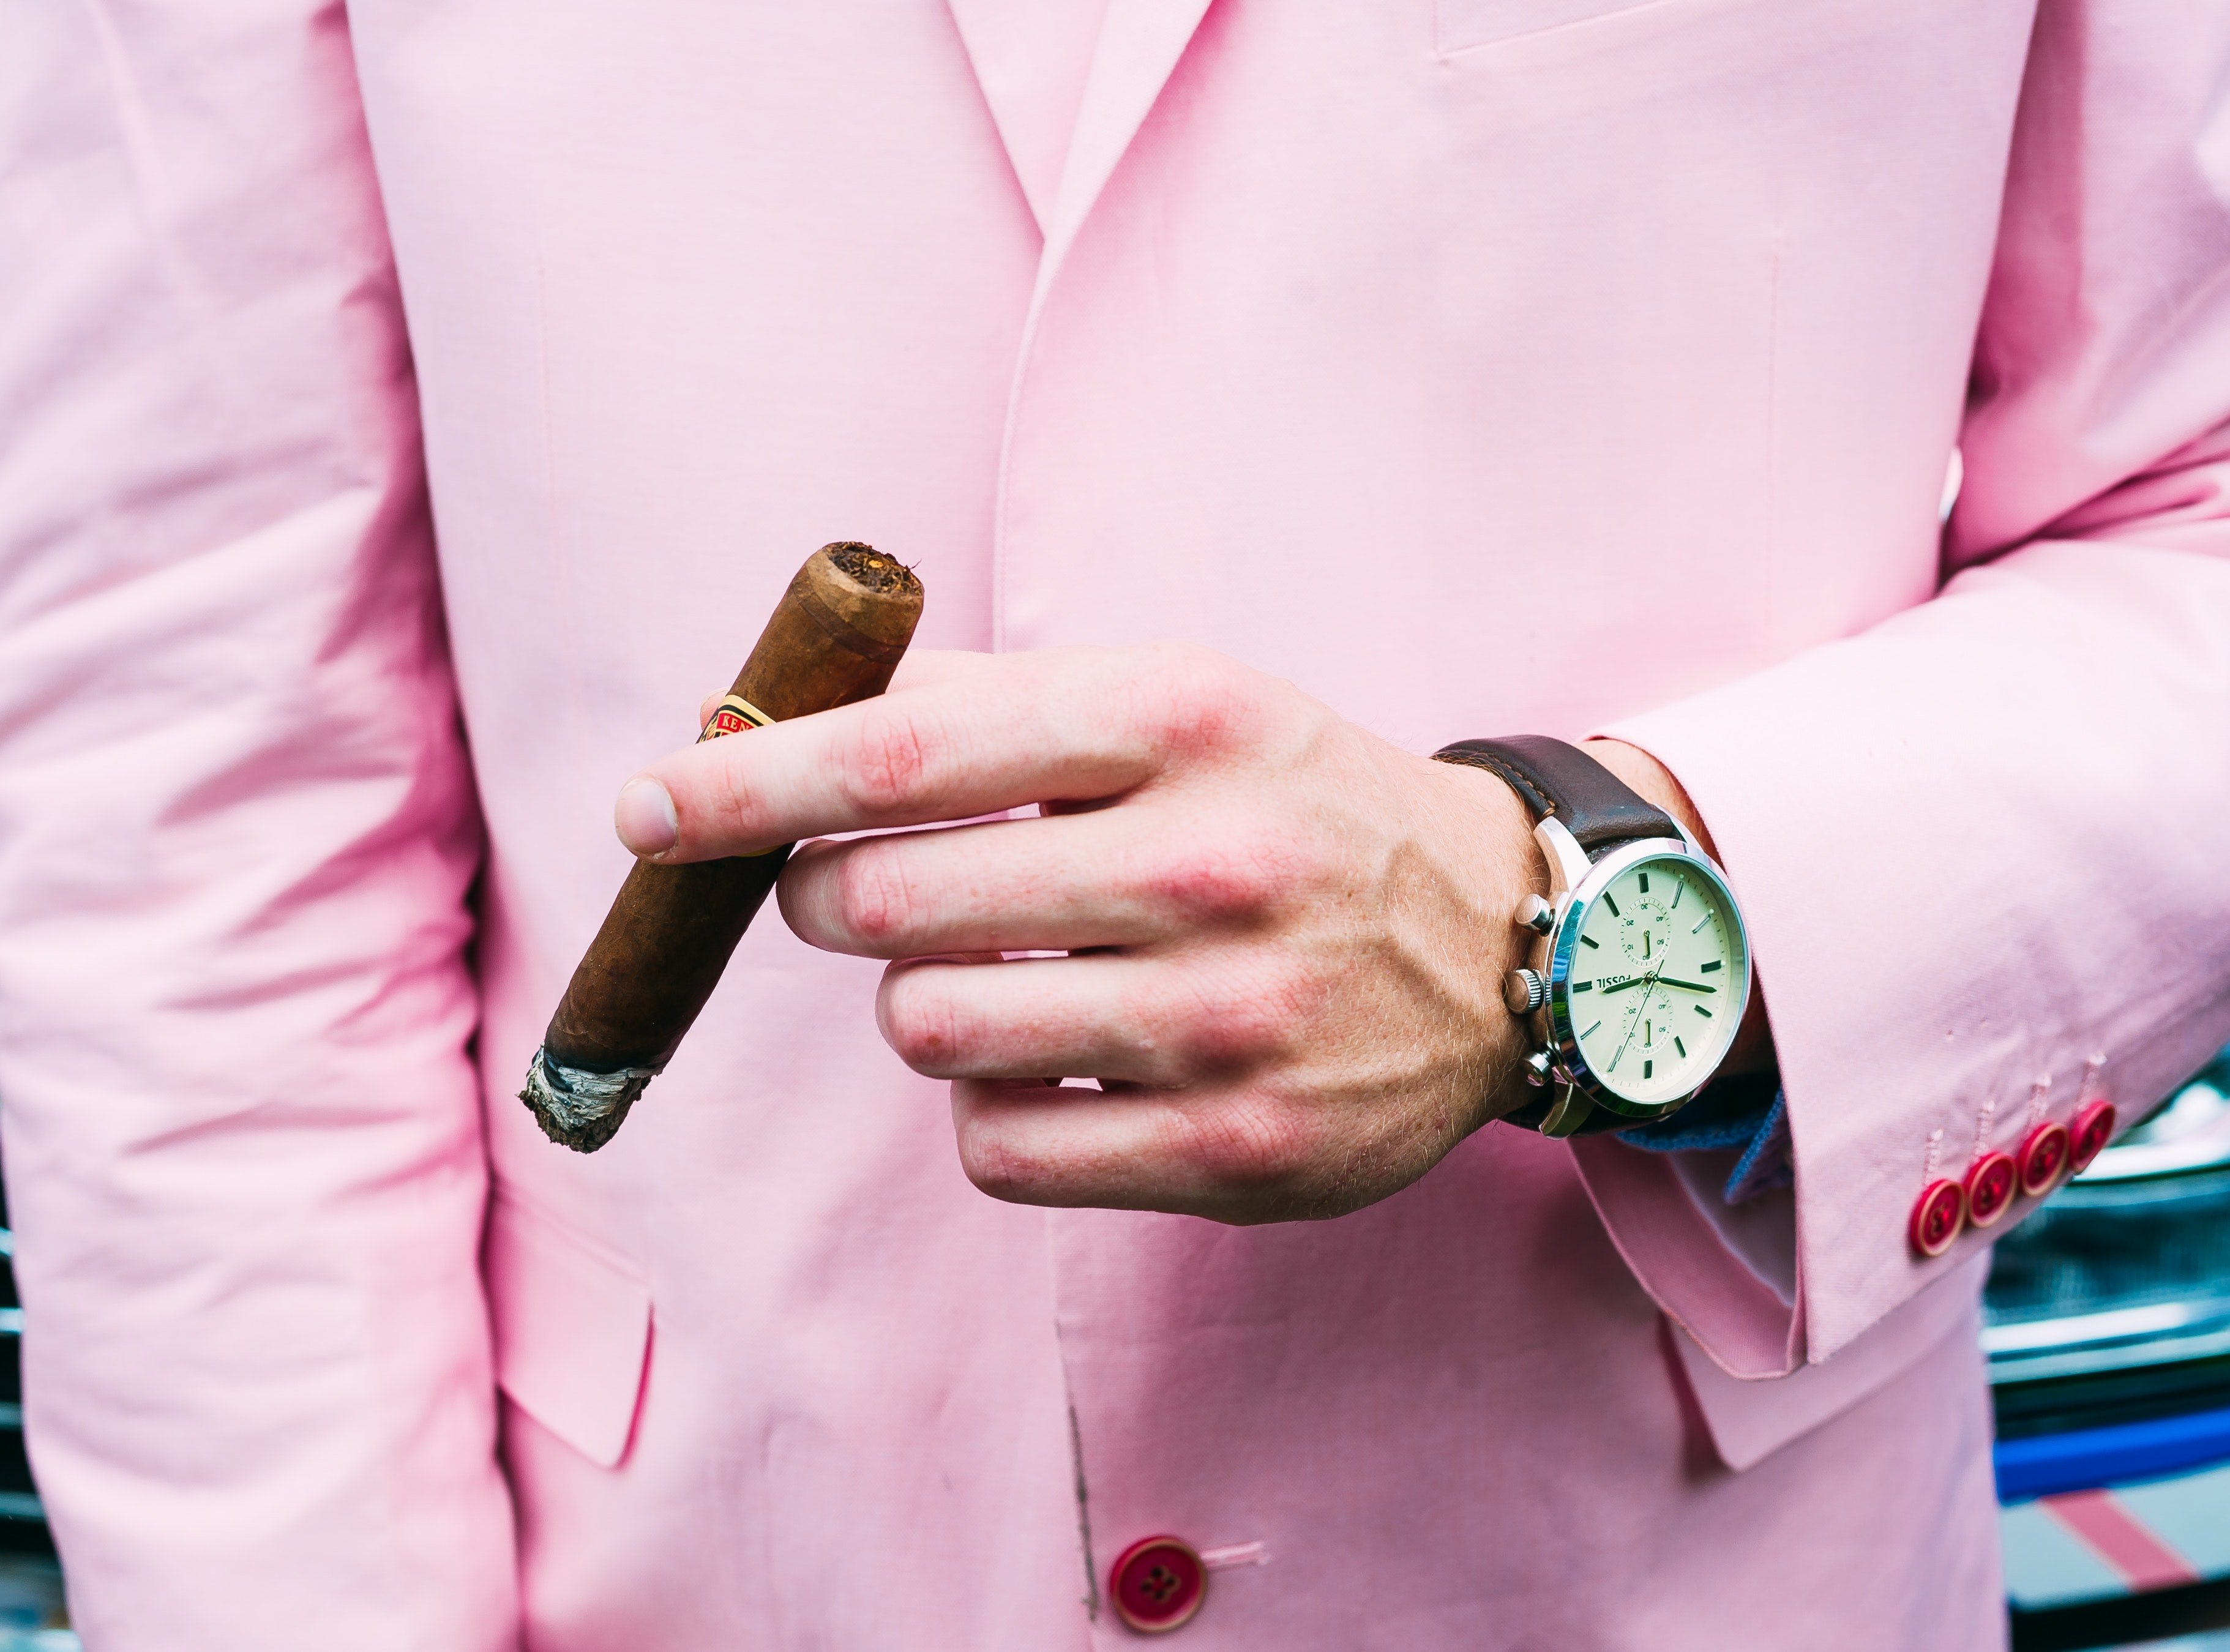 The clerk succeeded in selling off the ugly pink suit to one customer.   Photo: Pexels